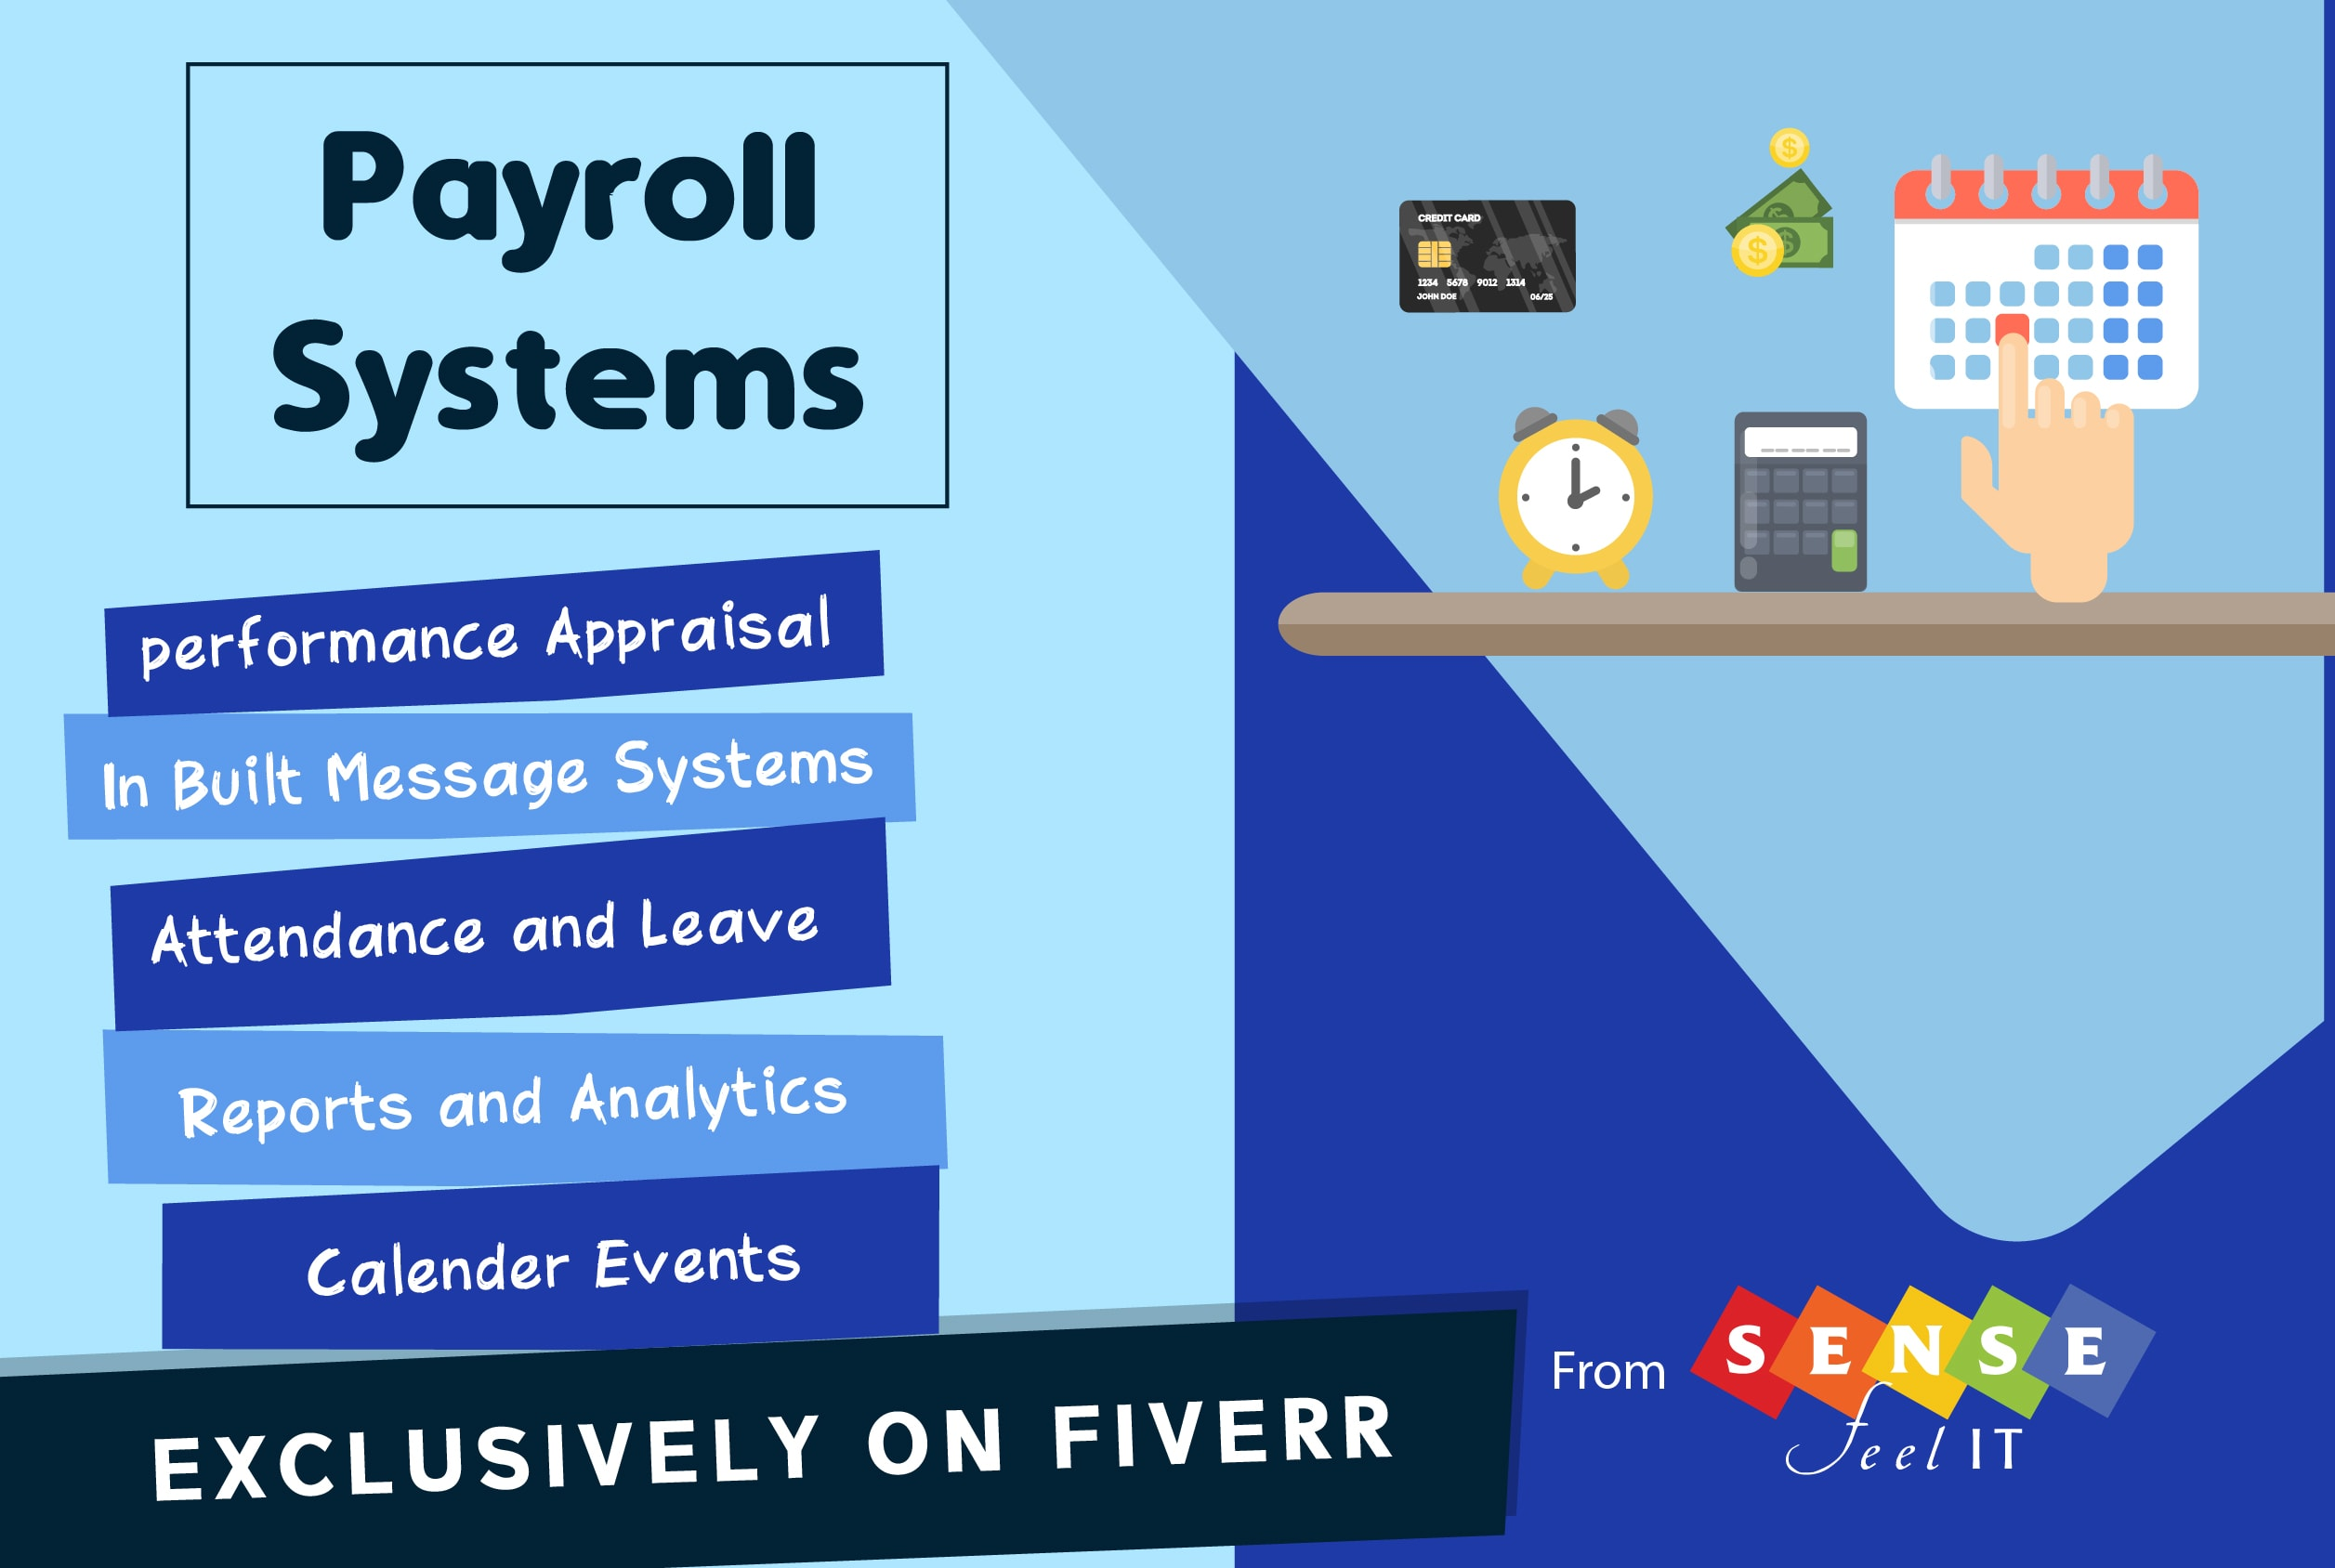 Develop payroll system software by Sensefeelit | Fiverr